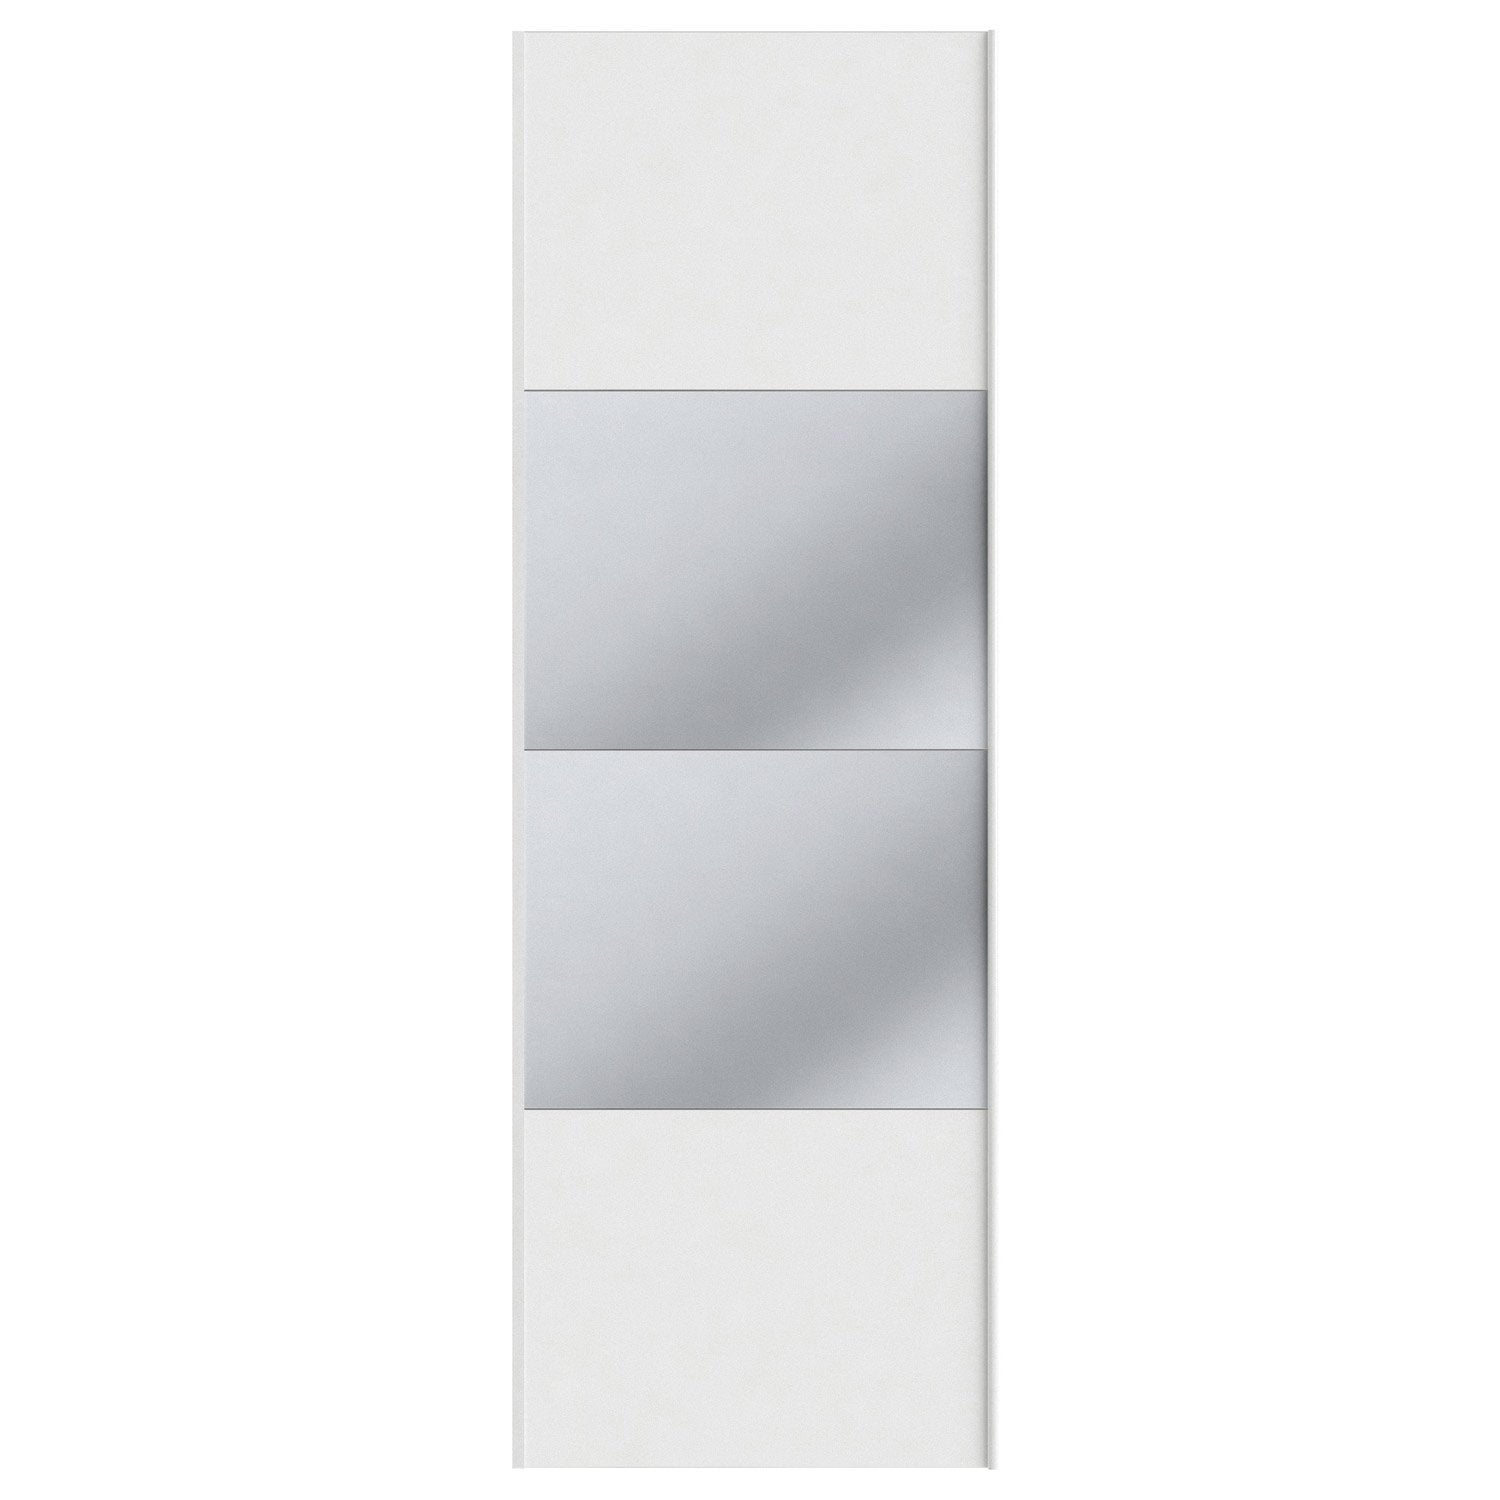 Portes coulissantes spaceo home 240 x 80 x 1 6 cm blanc leroy merlin - Spaceo porte coulissante ...